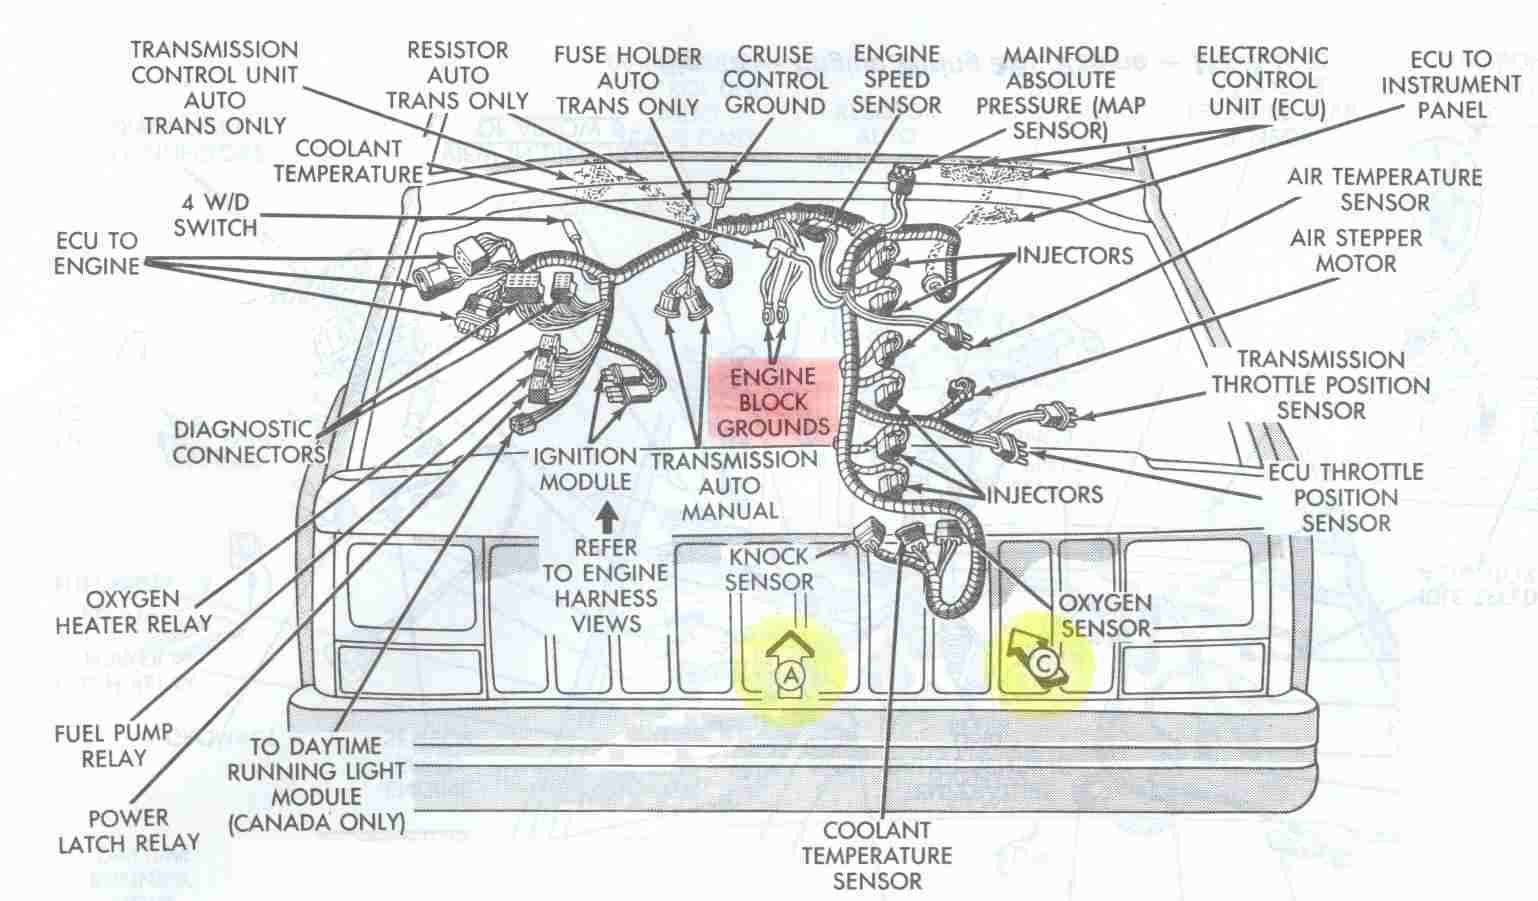 ab0134a7d9e021431187af597eb4aeca engine bay schematic showing major electrical ground points for 1993 jeep cherokee sport fuse box diagram at suagrazia.org